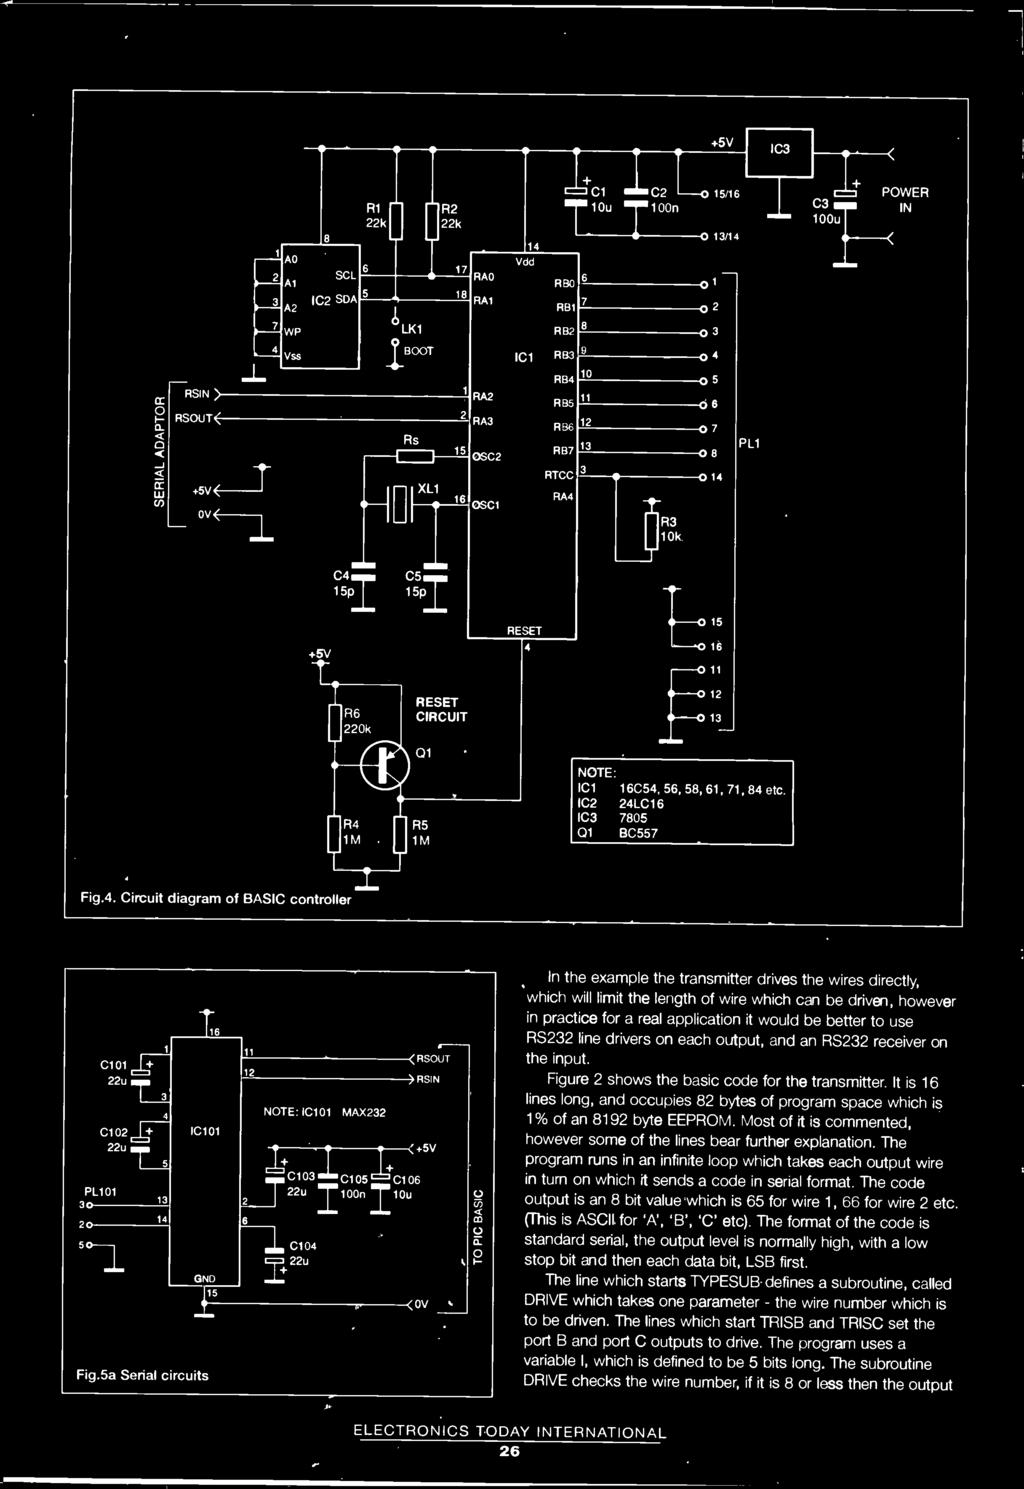 Future Electron Microscopy Pdf Car Alarm Wiring Diagrams Carbine Alarms Tm Of Wire Which Can Be Driven However In Practice For A Real Application It Would